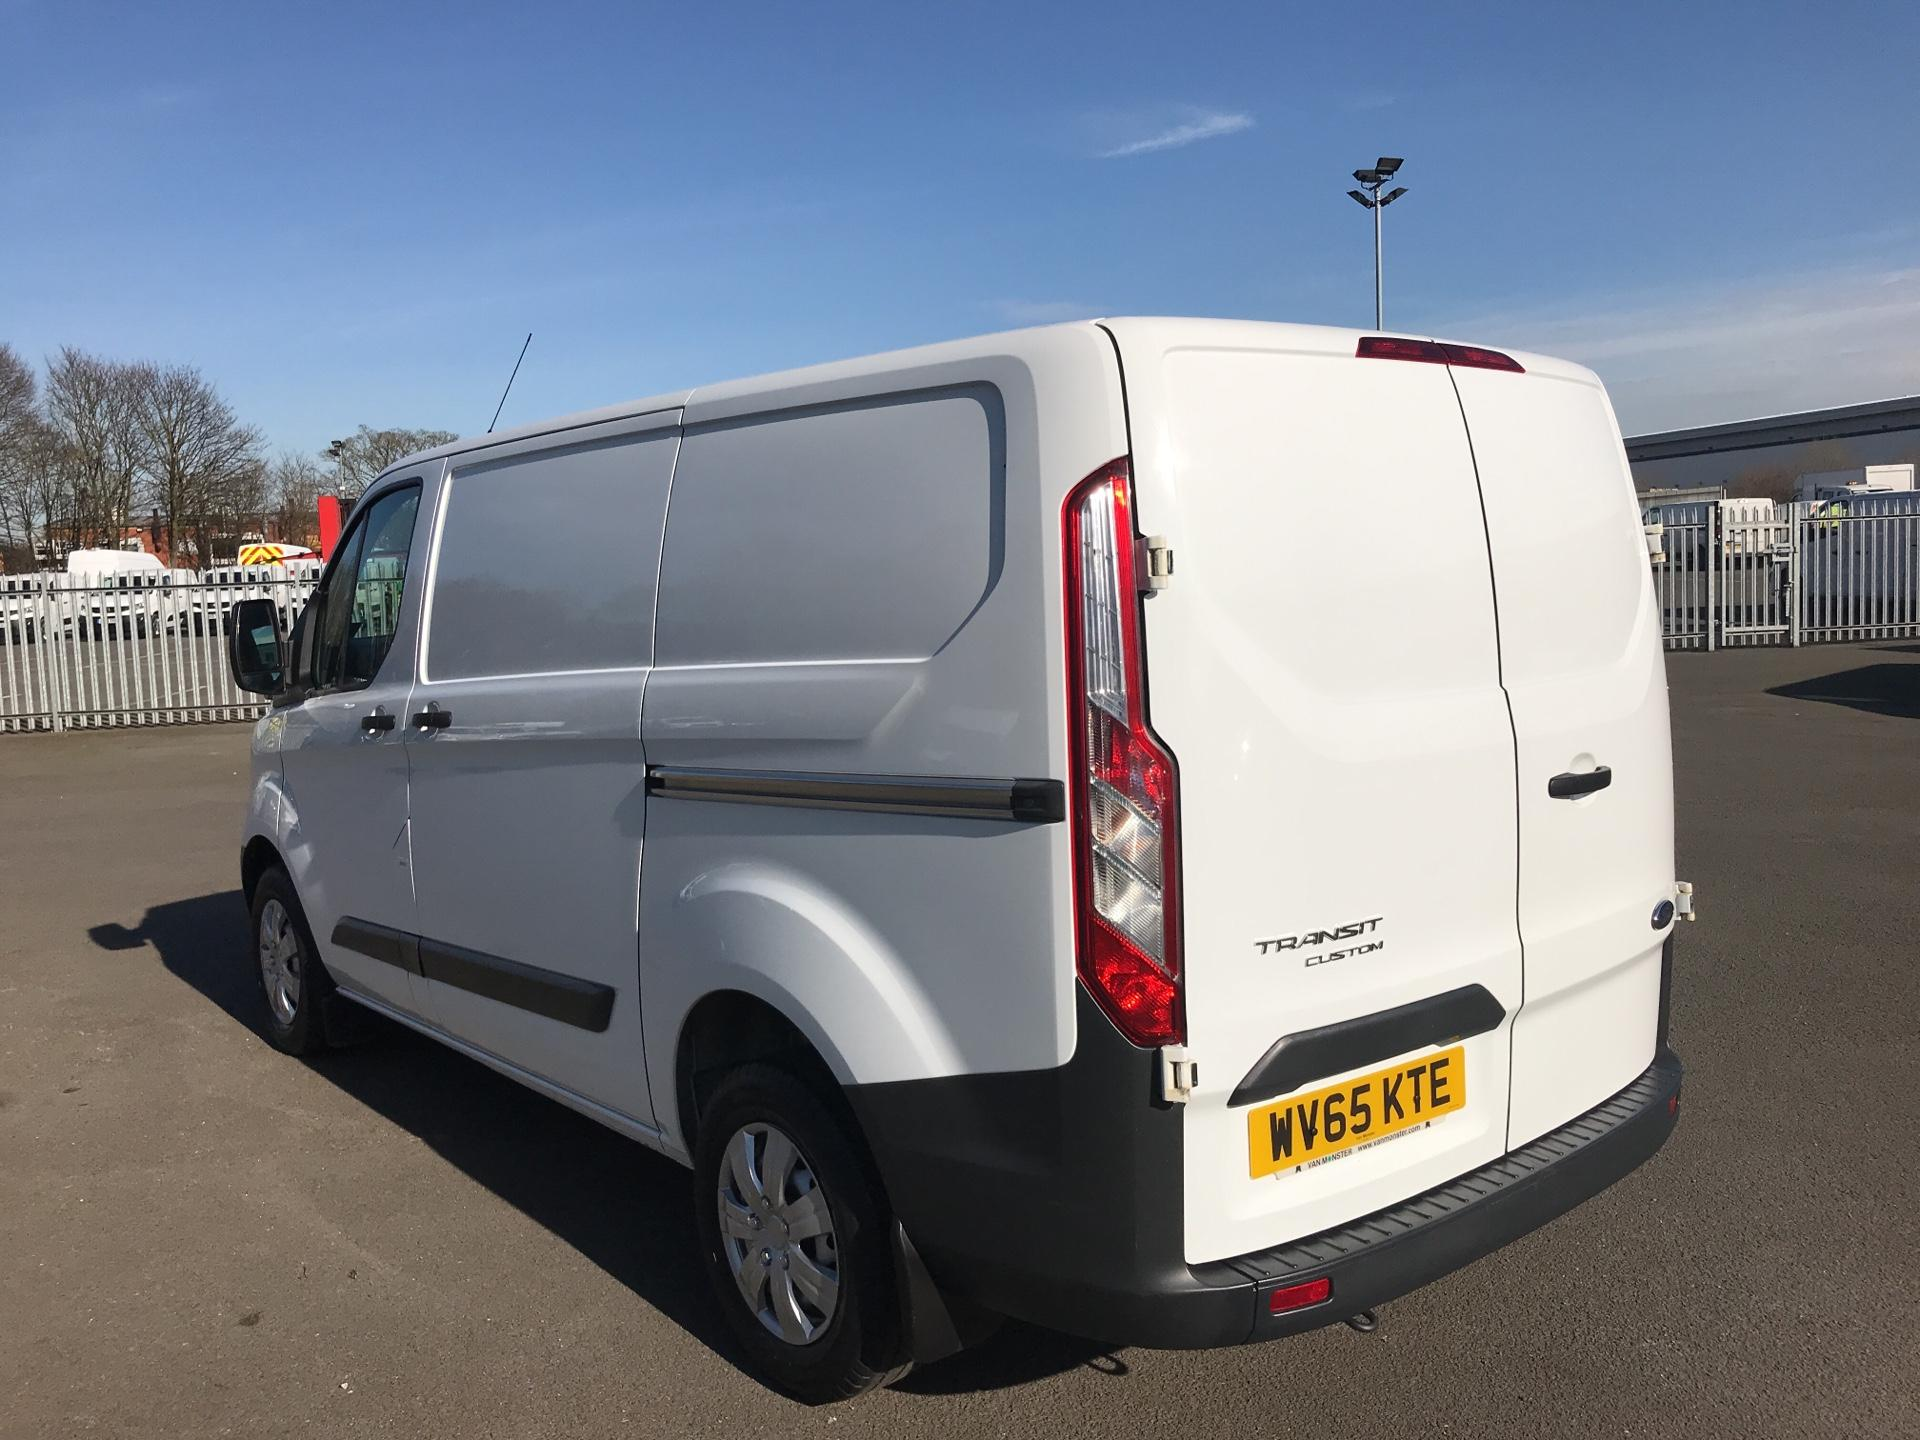 2015 Ford Transit Custom 290 L1 DIESEL FWD 2.2  TDCI 100PS LOW ROOF VAN EURO 5 (WV65KTE) Thumbnail 5